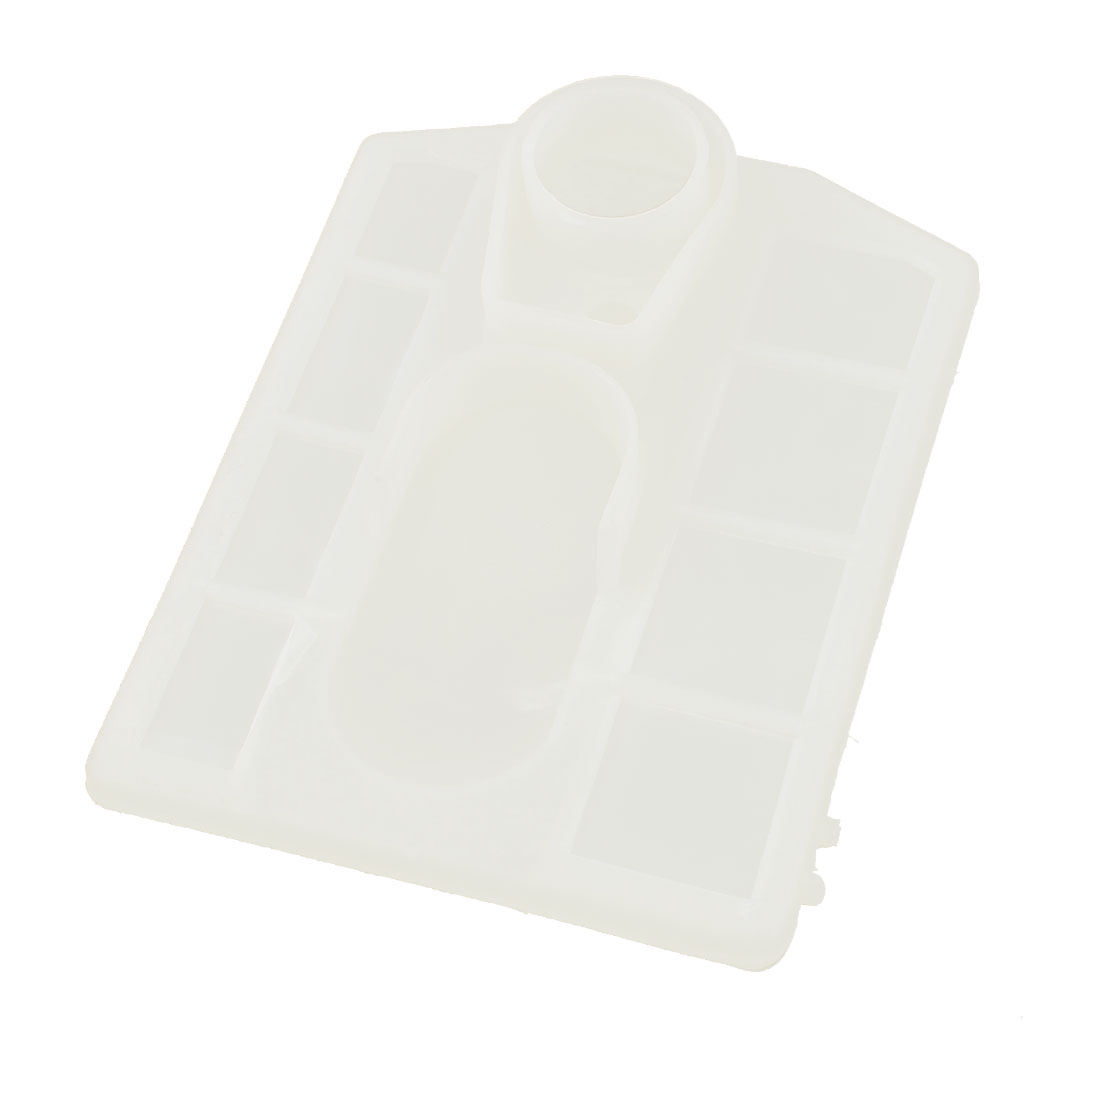 20mm Inlethole Dia Clear Plastic Frame Chainsaw Air Filter Cleaner